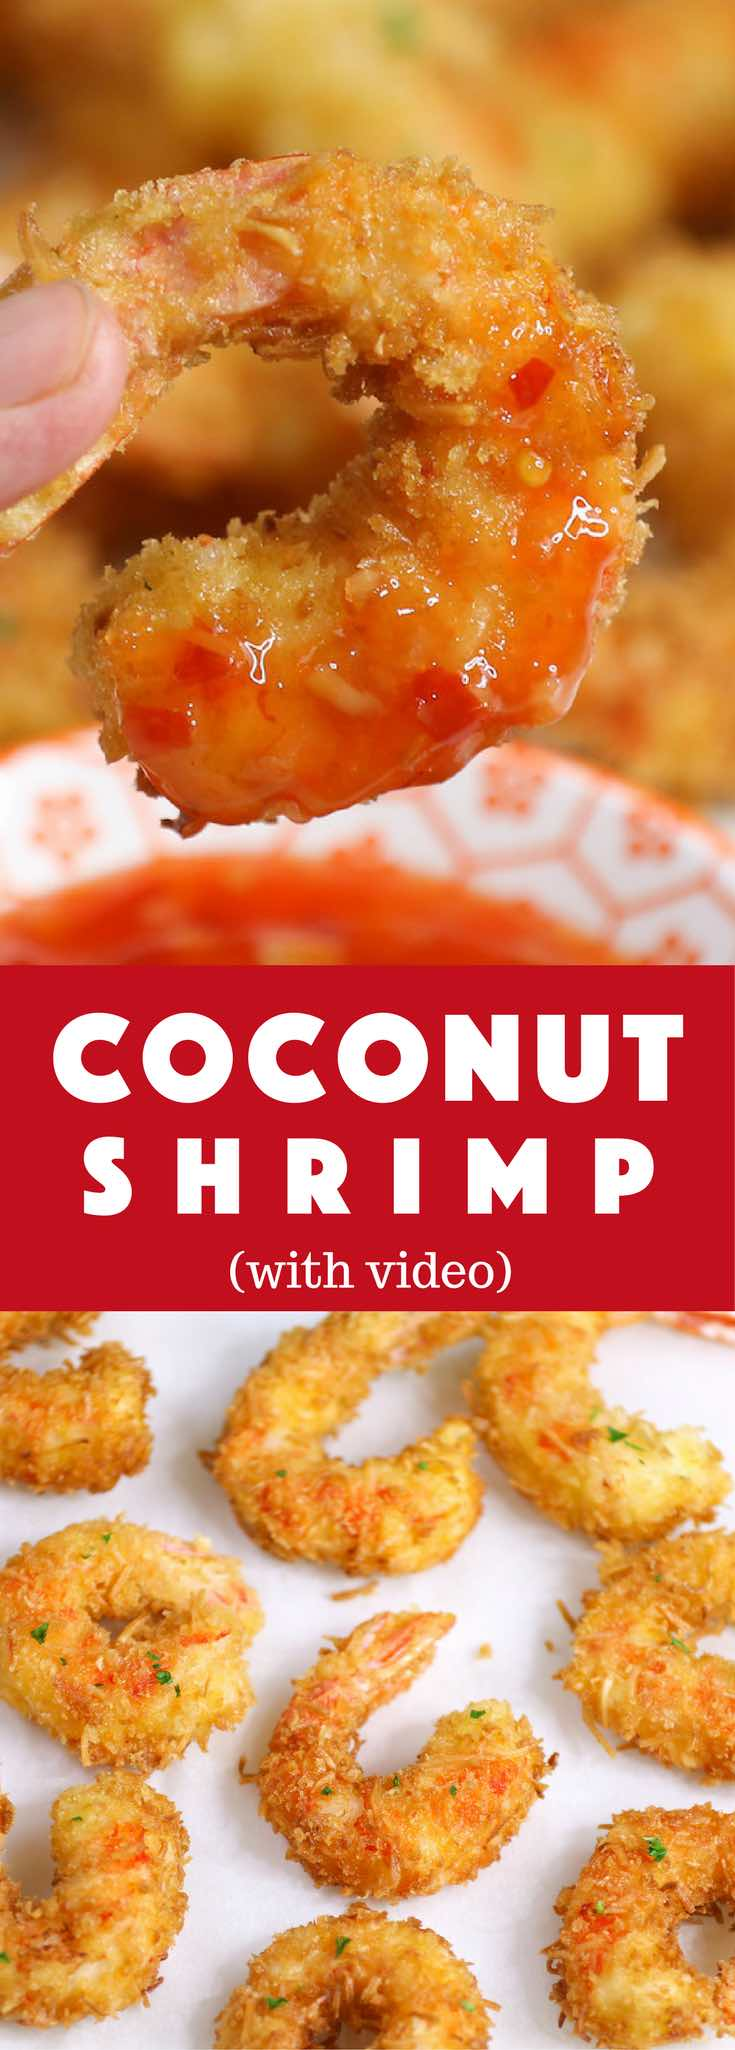 These Coconut Shrimp make an irresistible appetizer that's tender on the inside, and crispy, sweet and crunchy on the outside. They're mouthwateringly delicious and will be the first to go at a party!